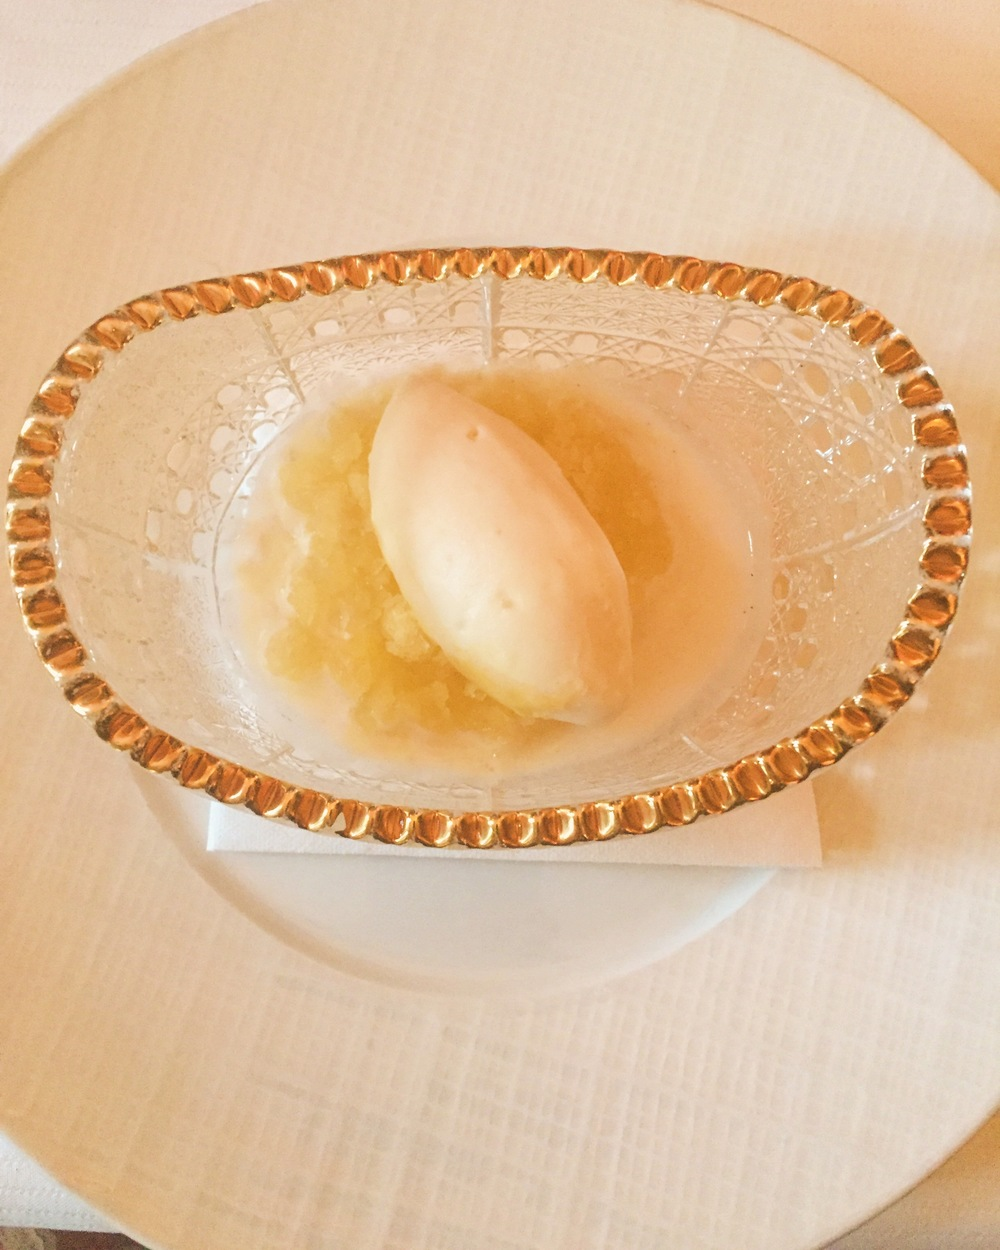 Pineapple and coconut sorbet palate cleanser